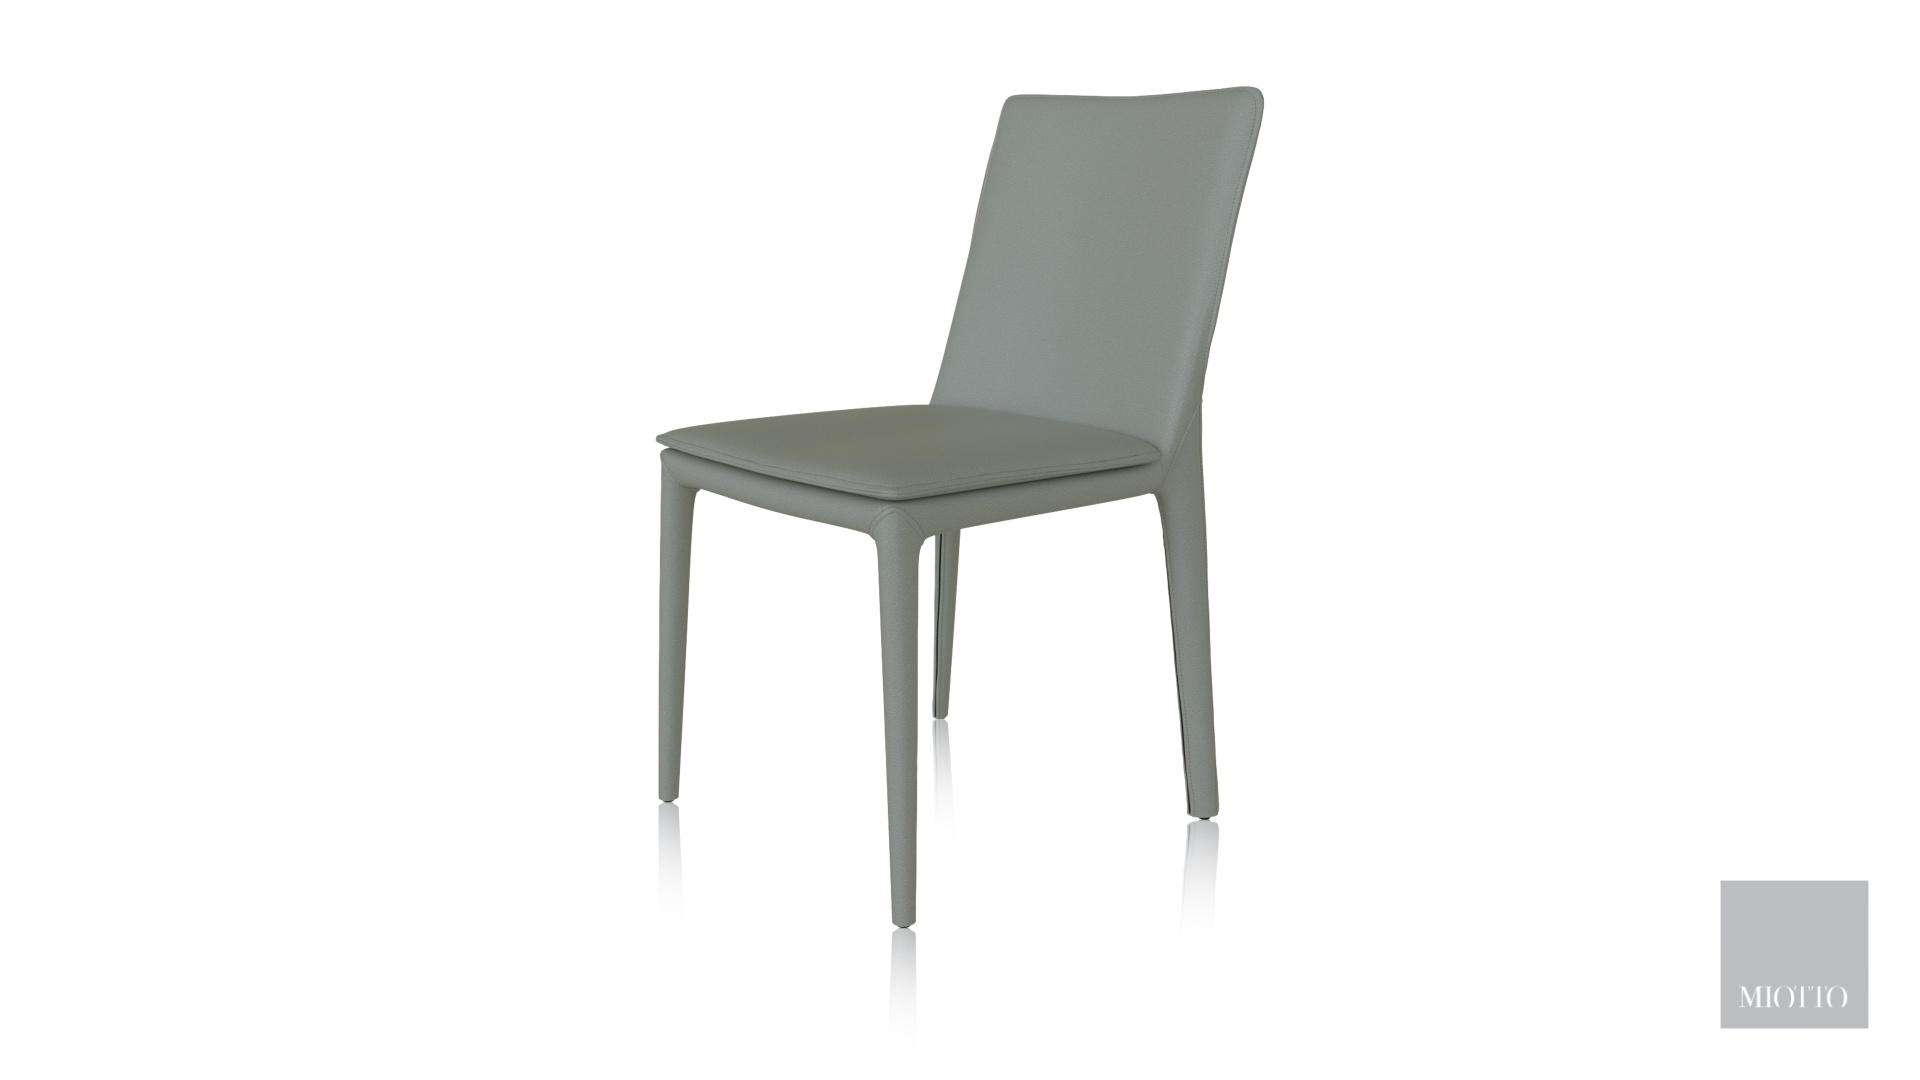 miotto_torano DC light grey T miotto dining chair furniture